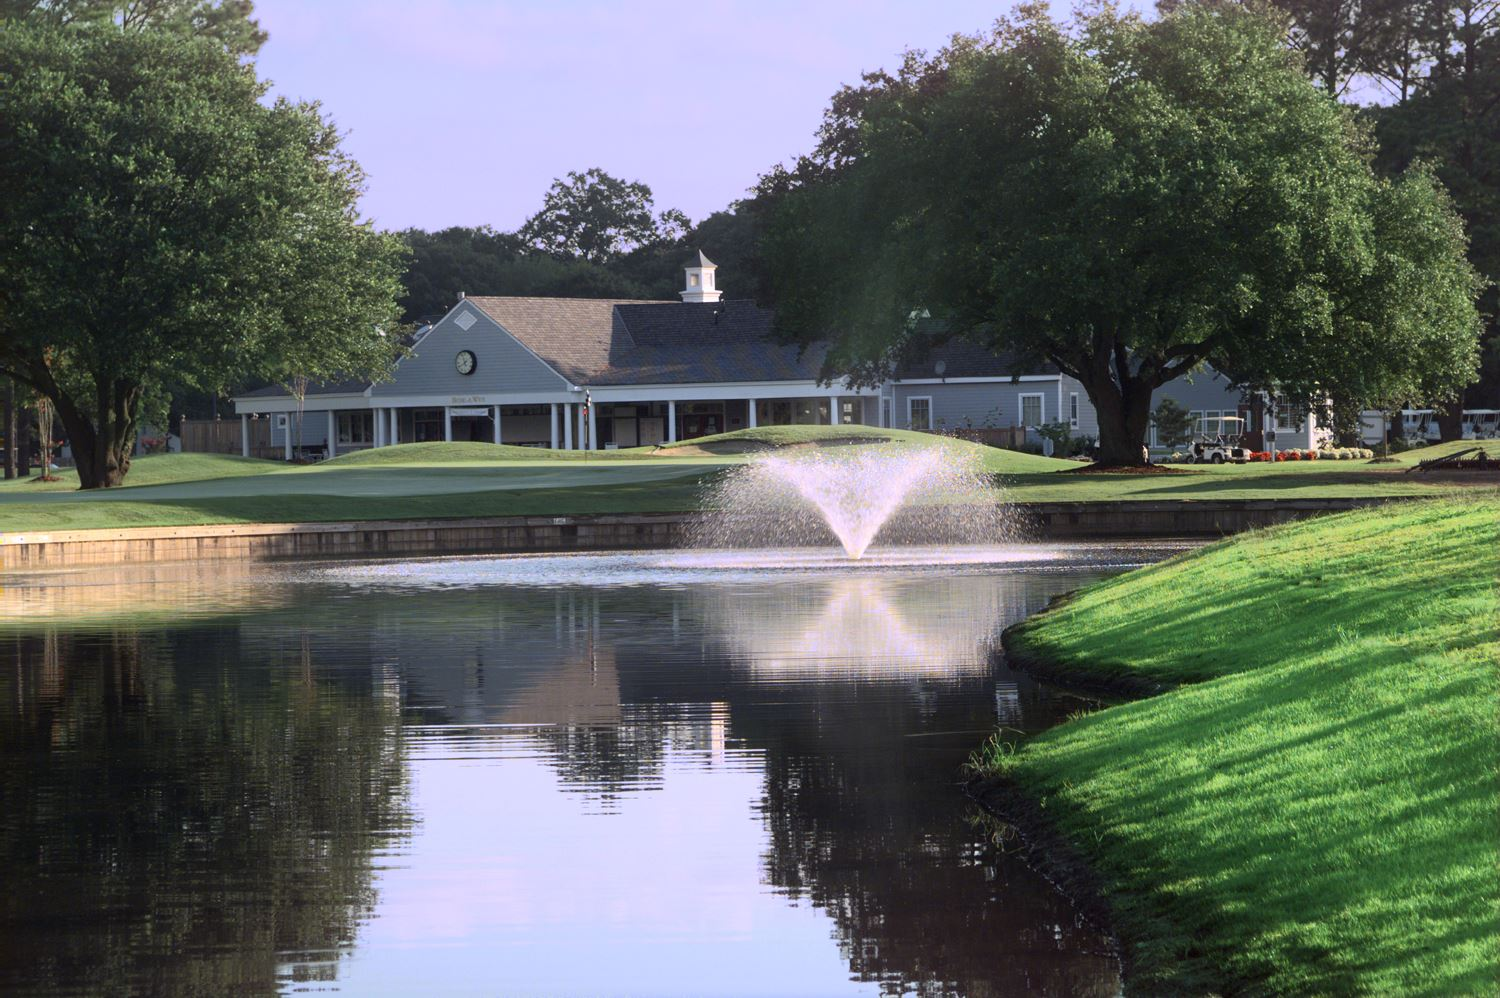 Bide-A-Wee Golf Course pond and fountain